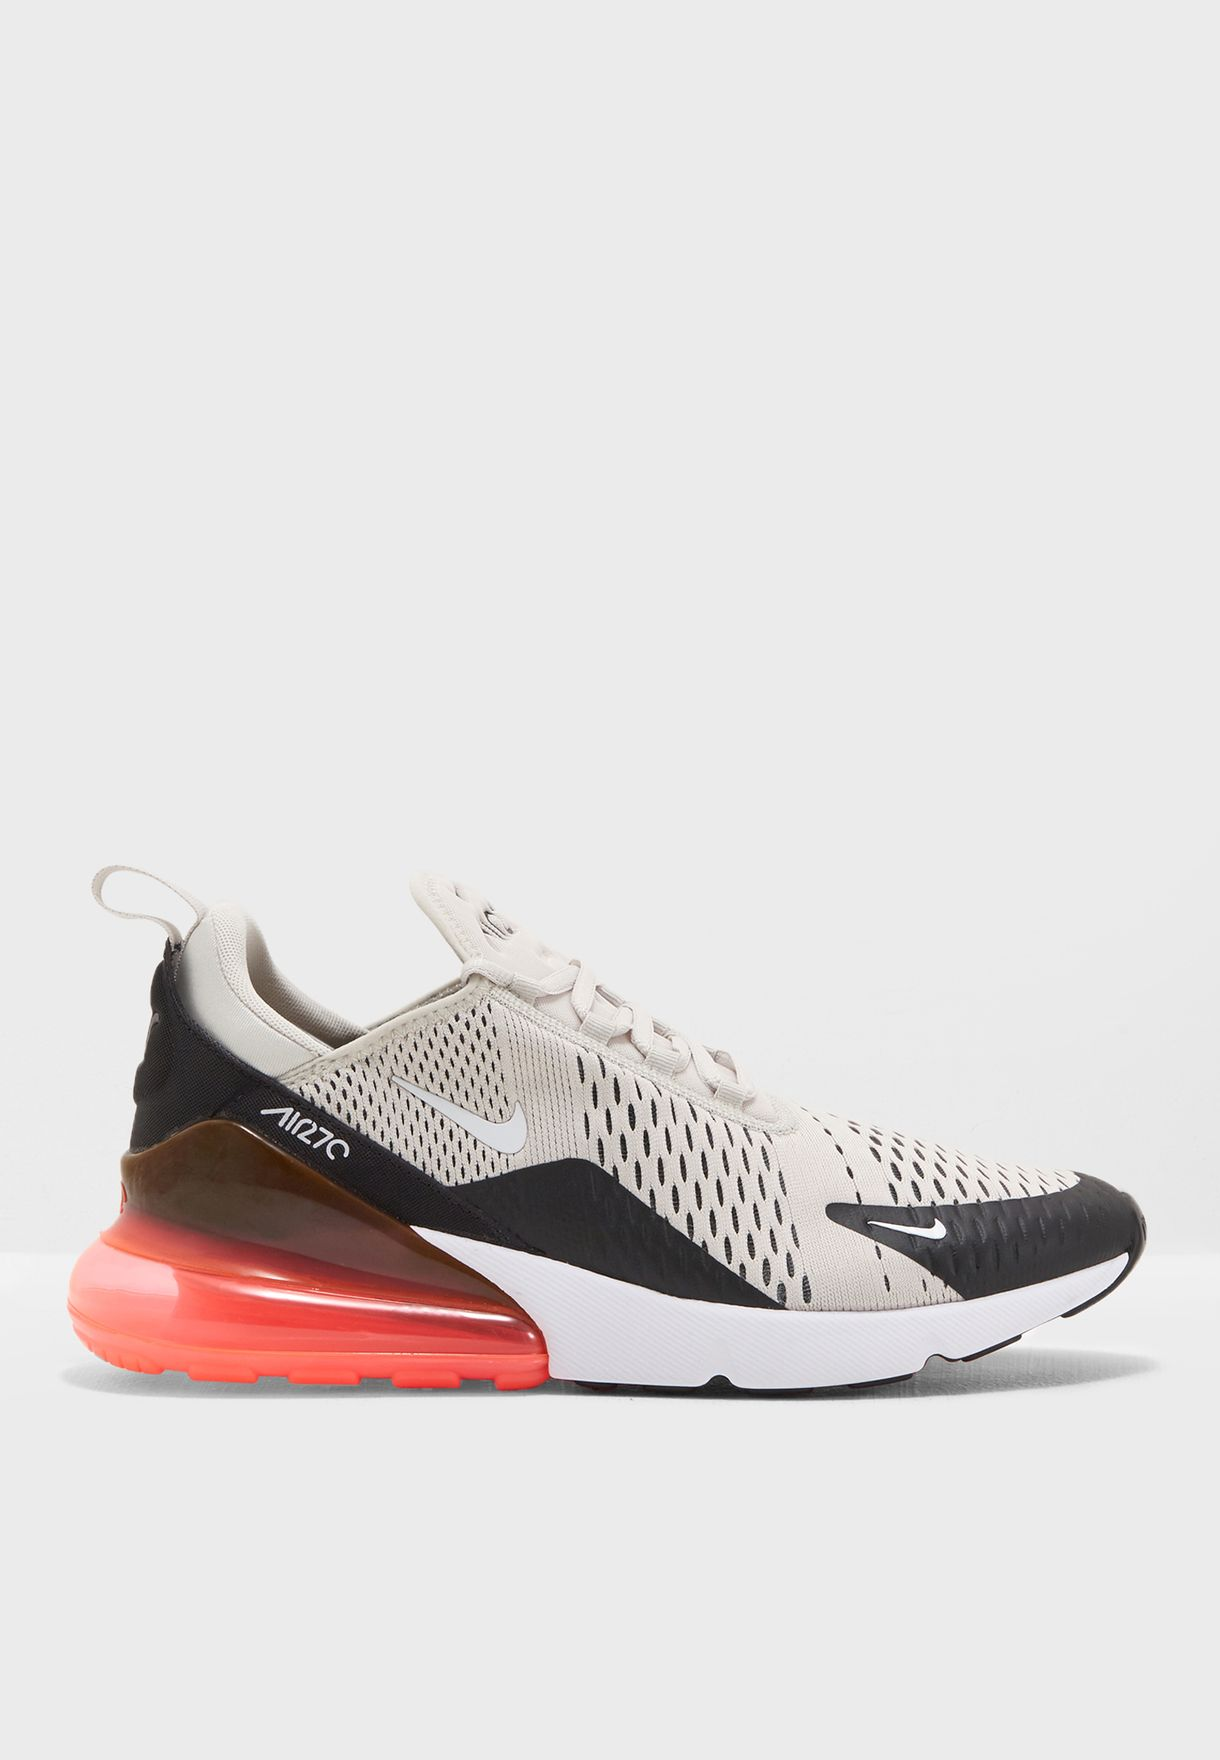 cheap for discount 4ee08 36cca Shop Nike multicolor Air Max 270 AH8050-003 for Men in Saudi ...